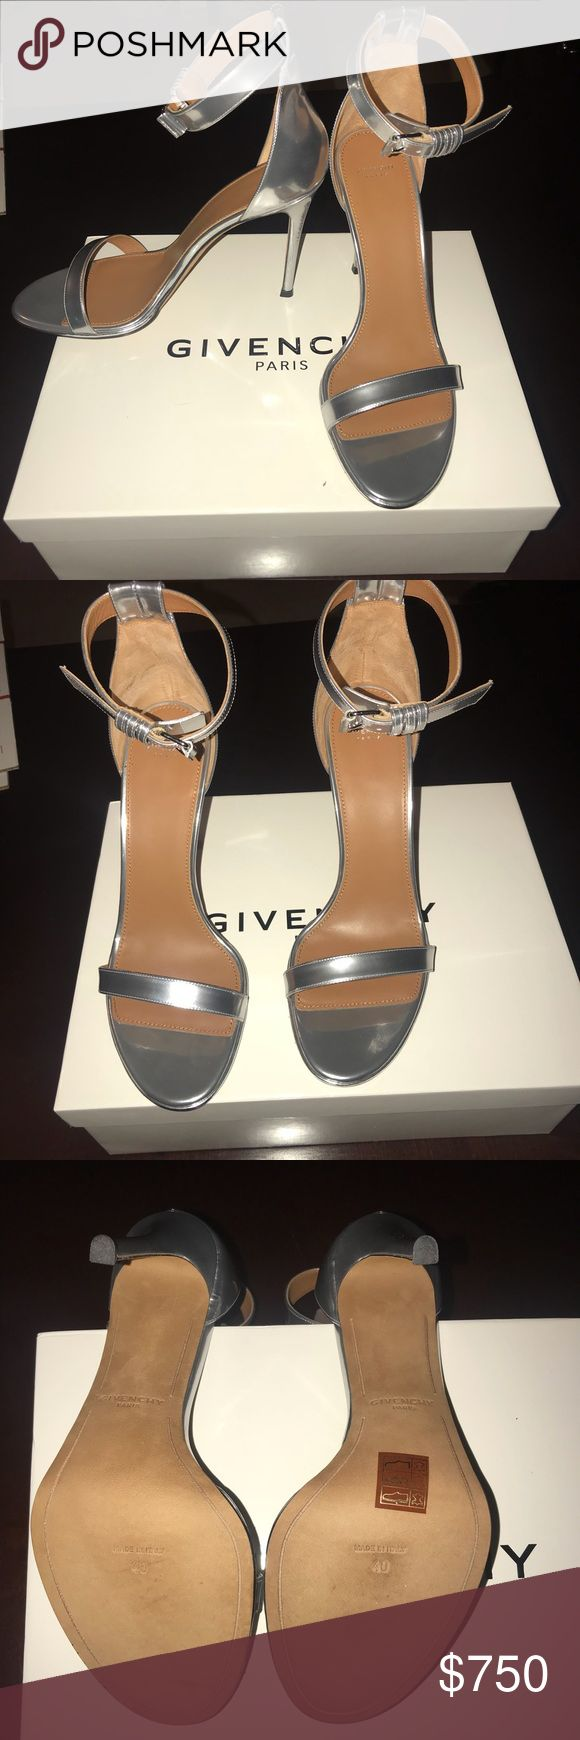 Givenchy Metallic Silver Ankle Strap Heel Sandals BNWT Metallic Silver high heeled sandals.  Brand new with original box Givenchy Shoes Heels